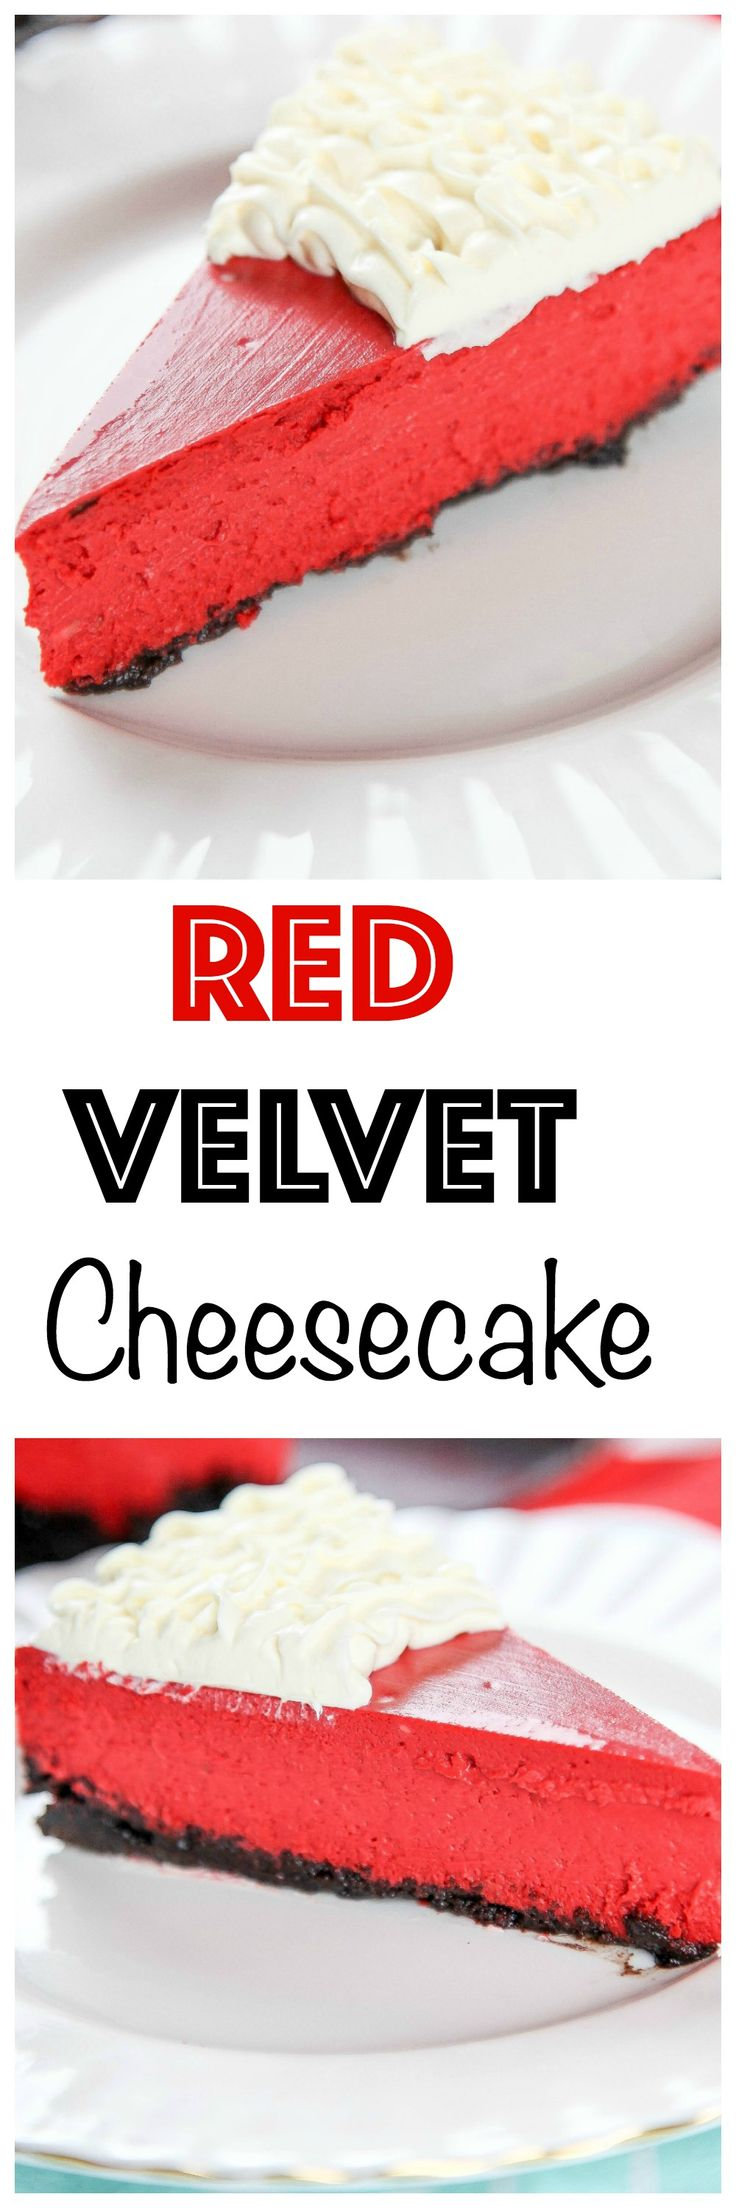 Red Velvet Oreo Cheesecake: Silky smooth red velvet cheesecake topped with a tangy cream cheese topping. Your favorite cake tastes even better in cheesecake form!